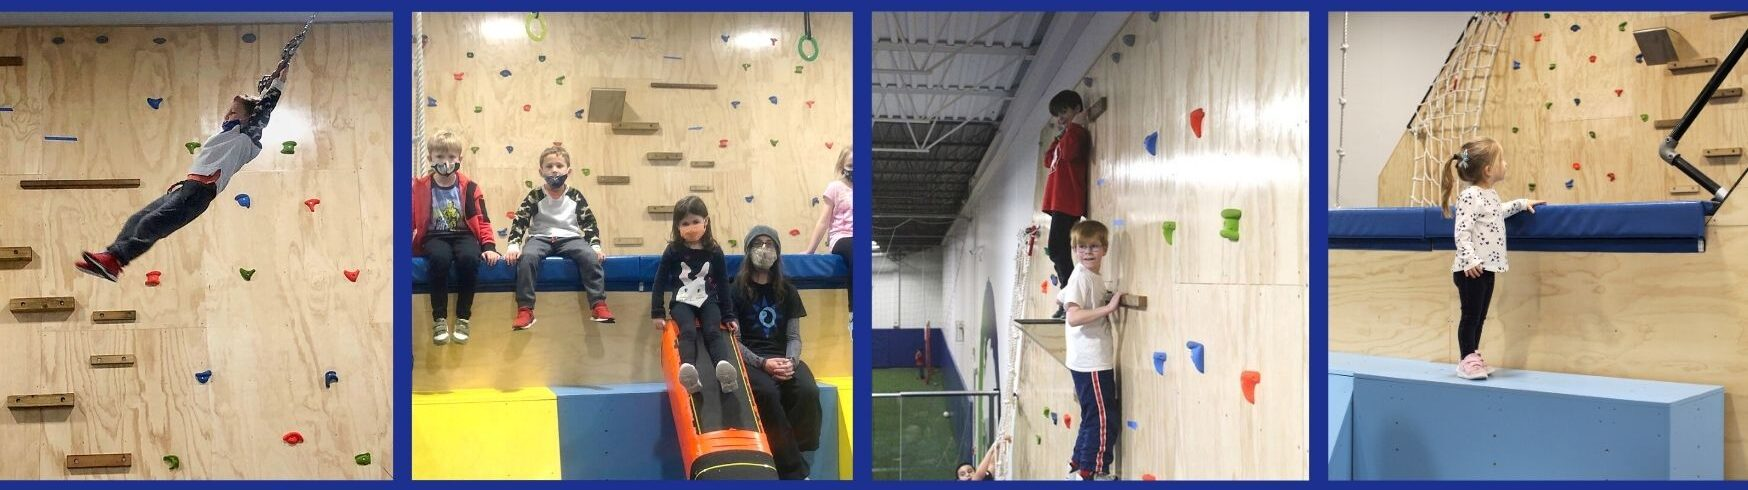 various pictures of parkour activities with children